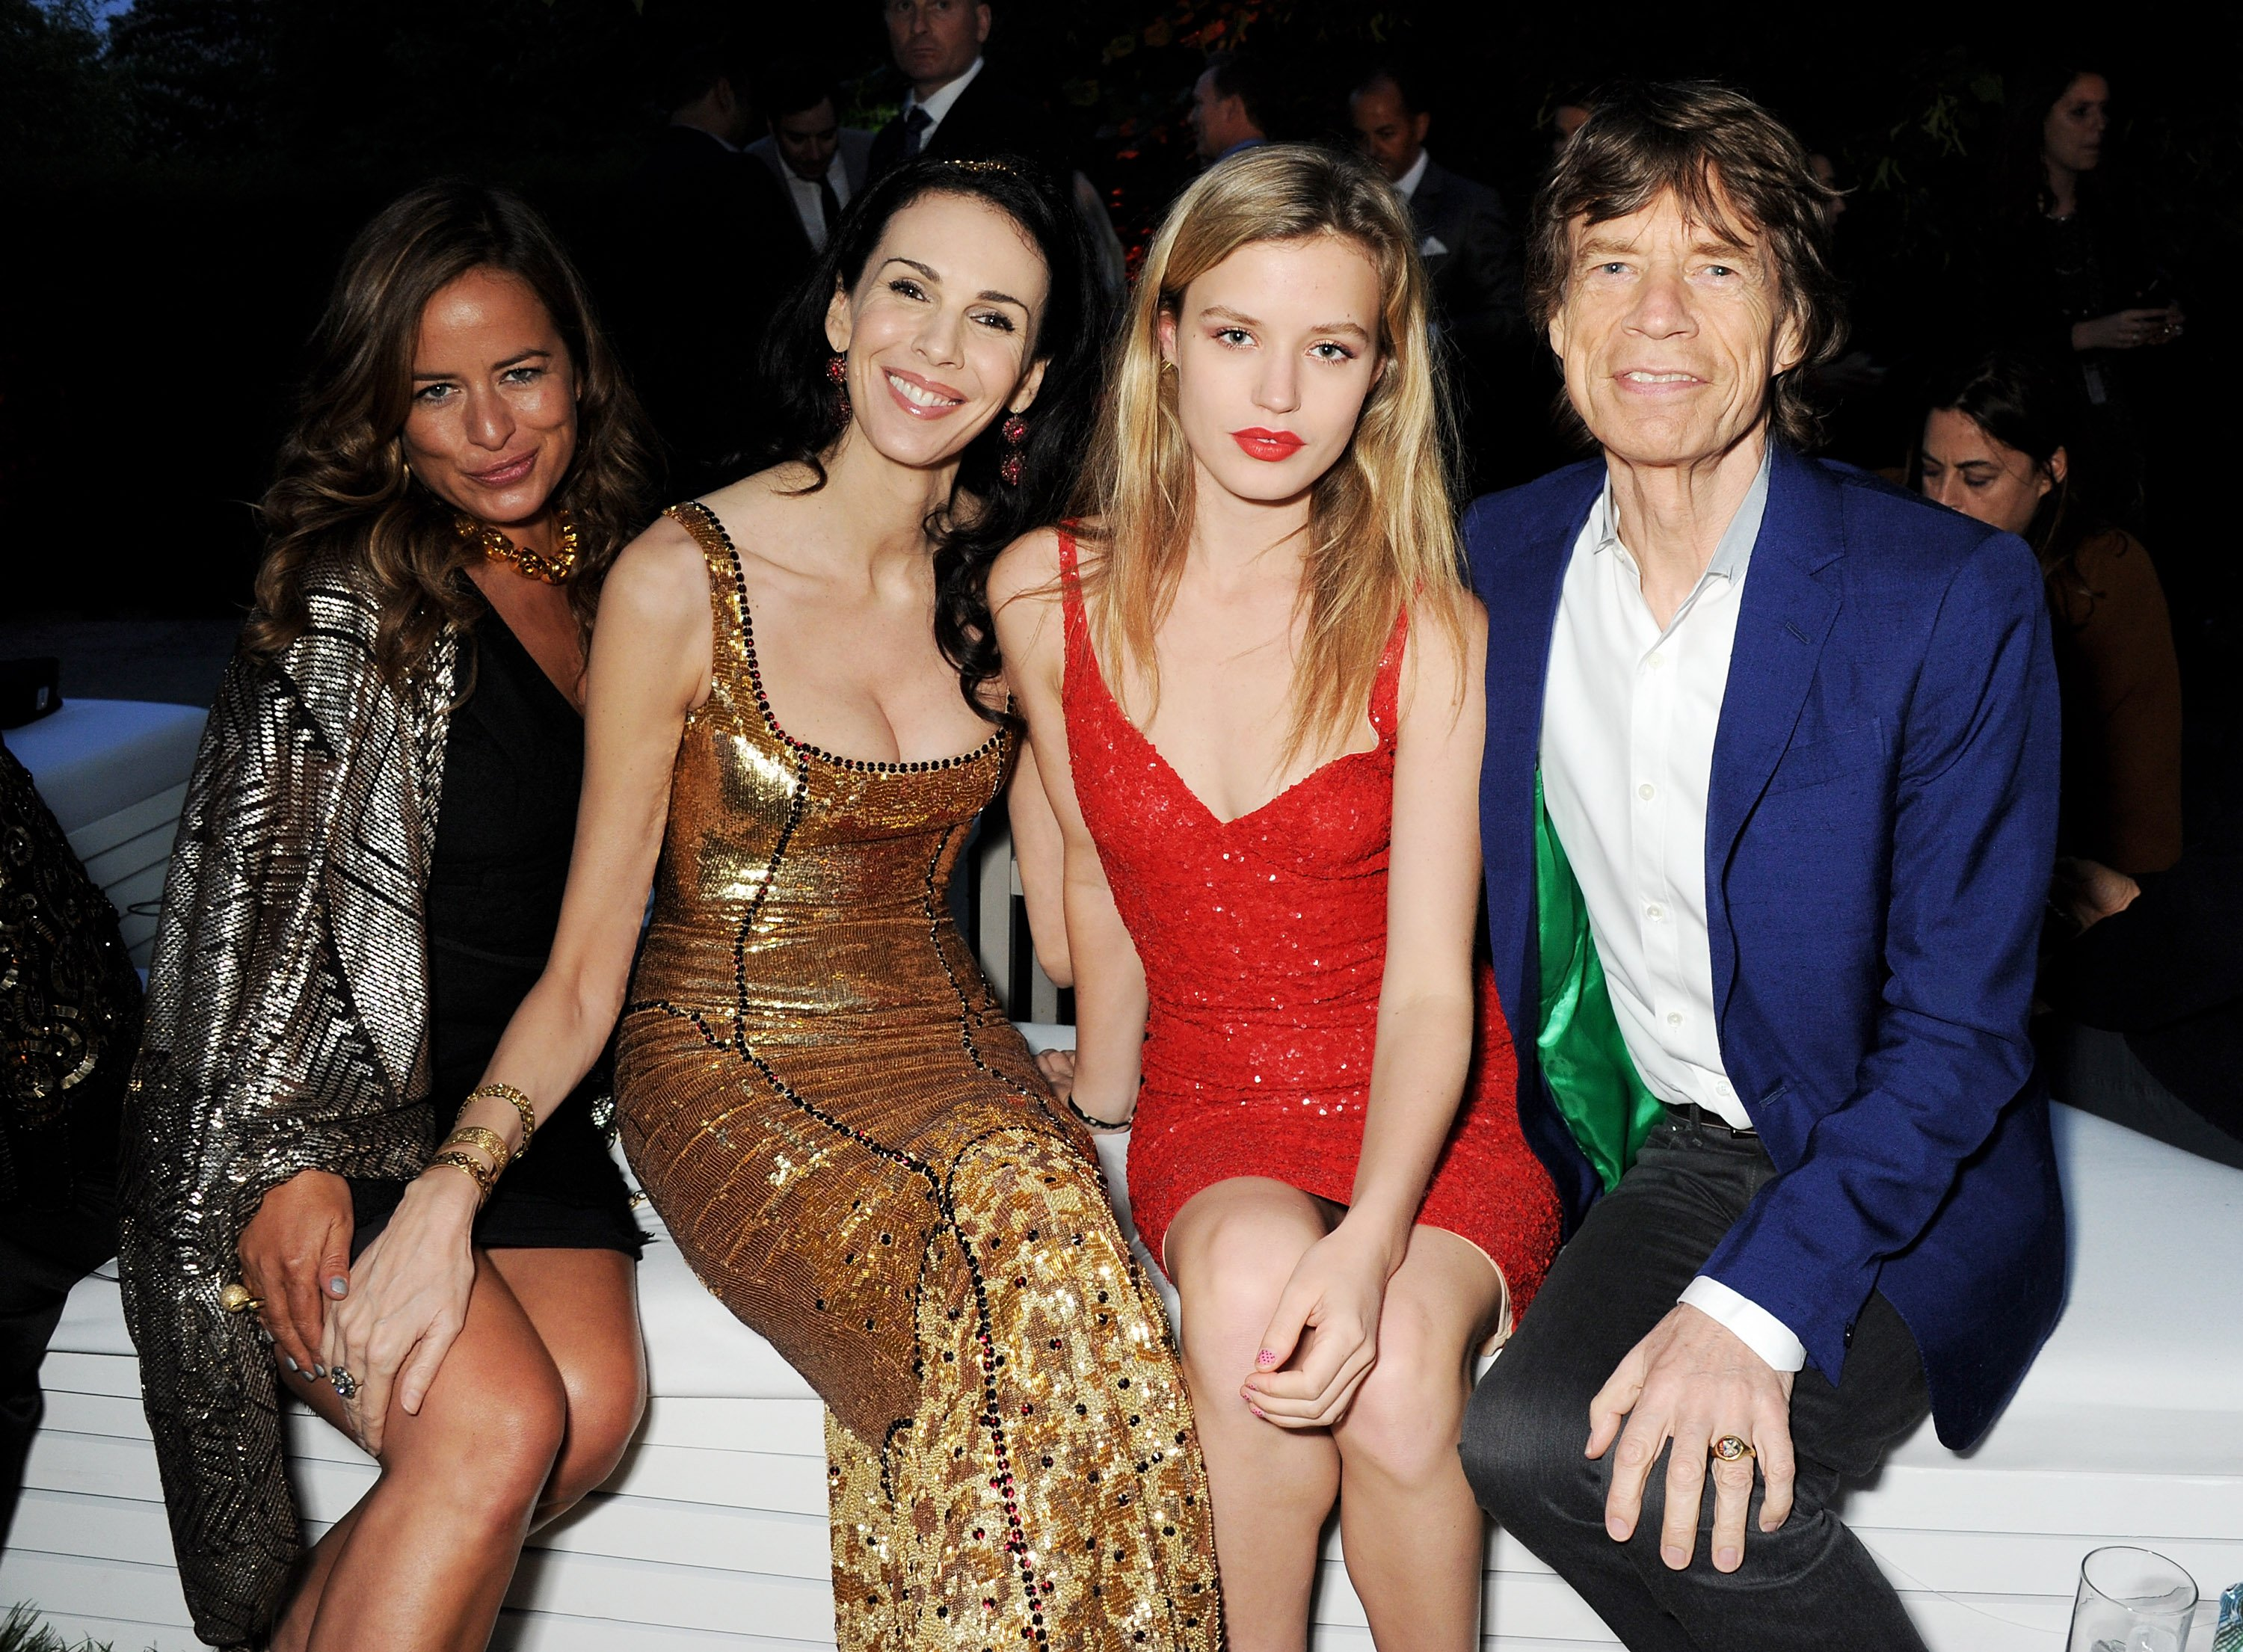 Jade Jagger, L'Wren Scott, Georgia Jagger and Mick Jagger at the annual Serpentine Gallery Summer Party on June 26, 2013 in London, England. | Photo by Dave M. Benett/Getty Images